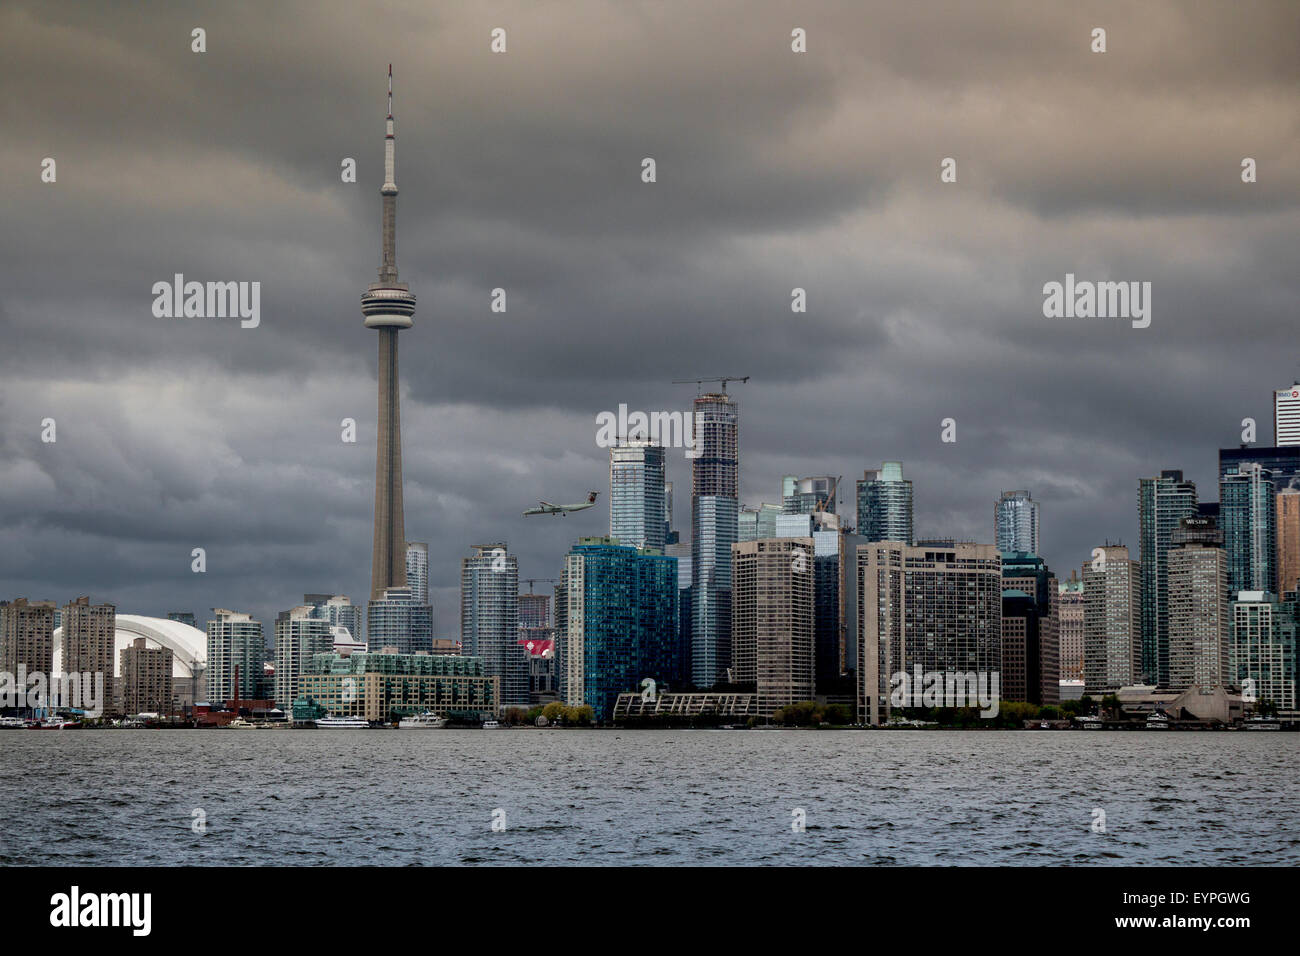 cityscape-of-the-city-of-toronto-over-a-